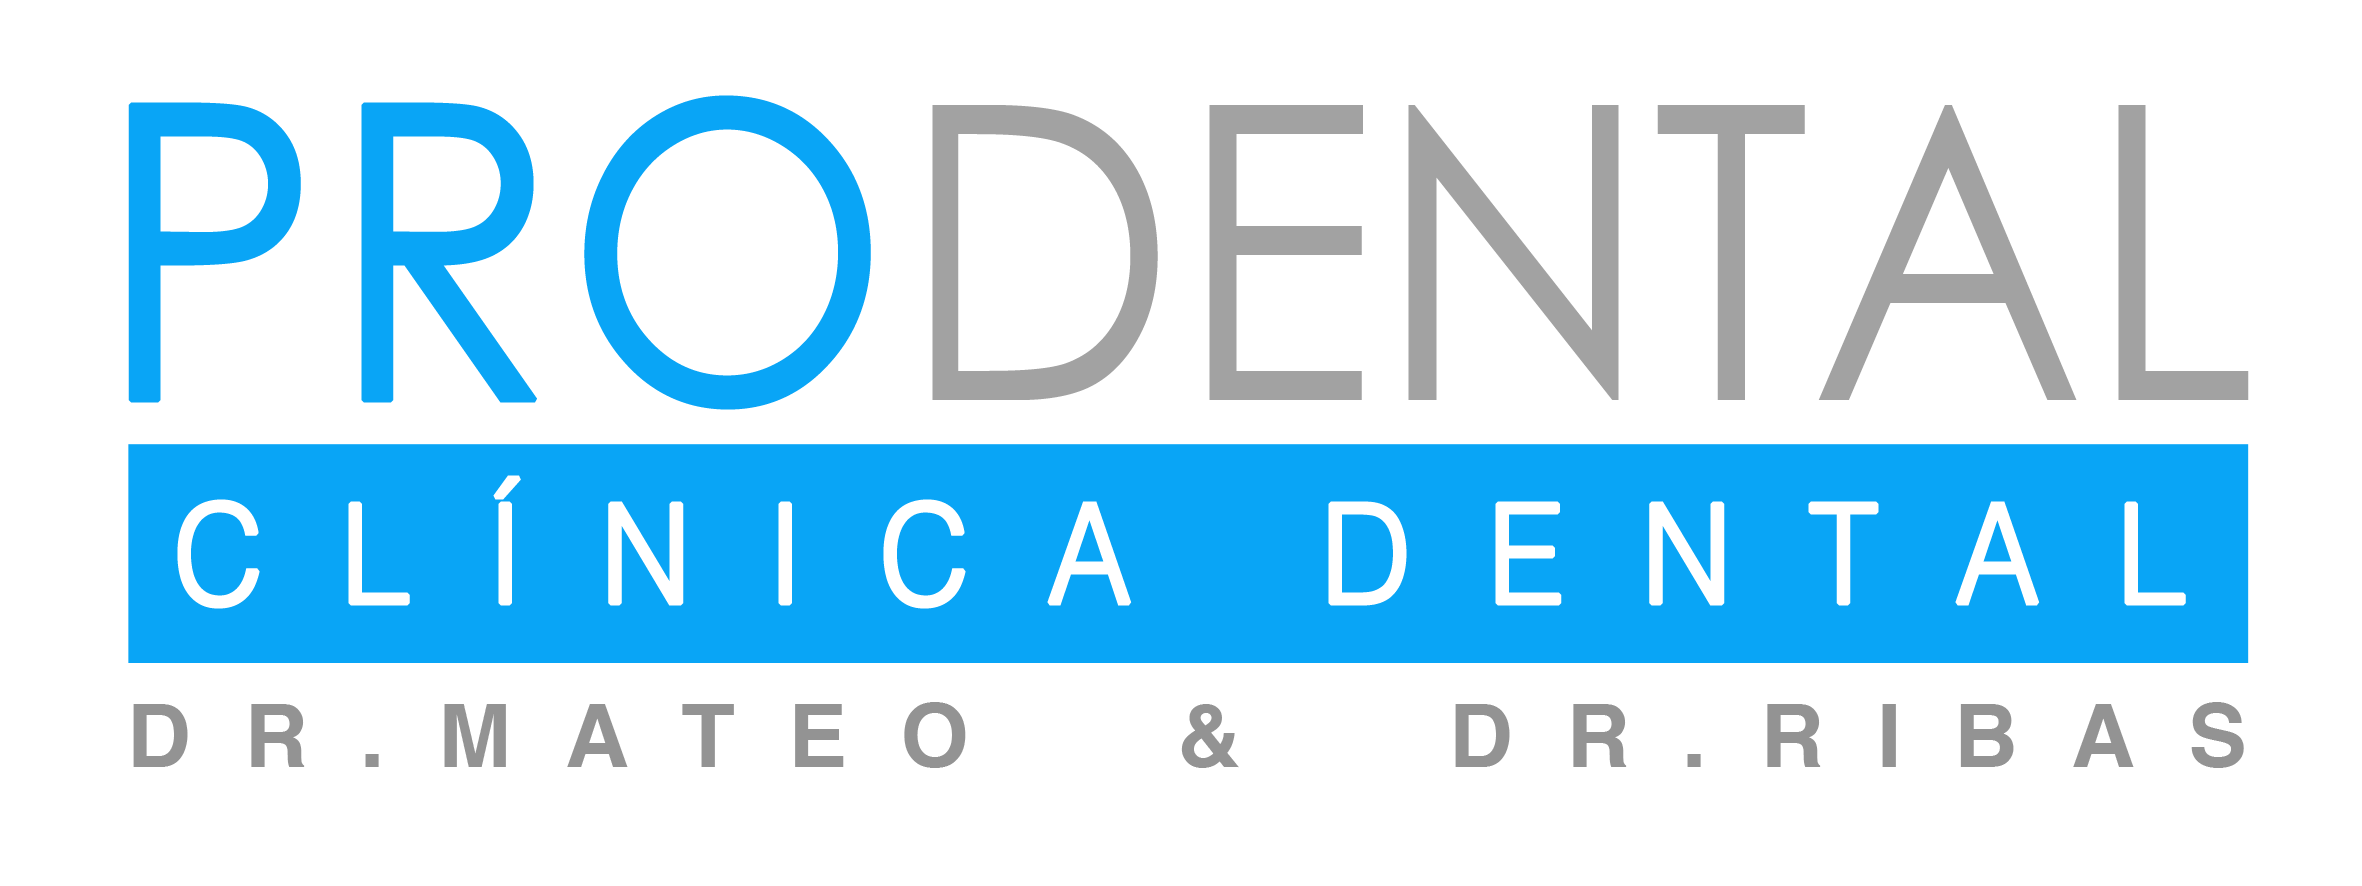 PRODENTAL - Clínica Dental